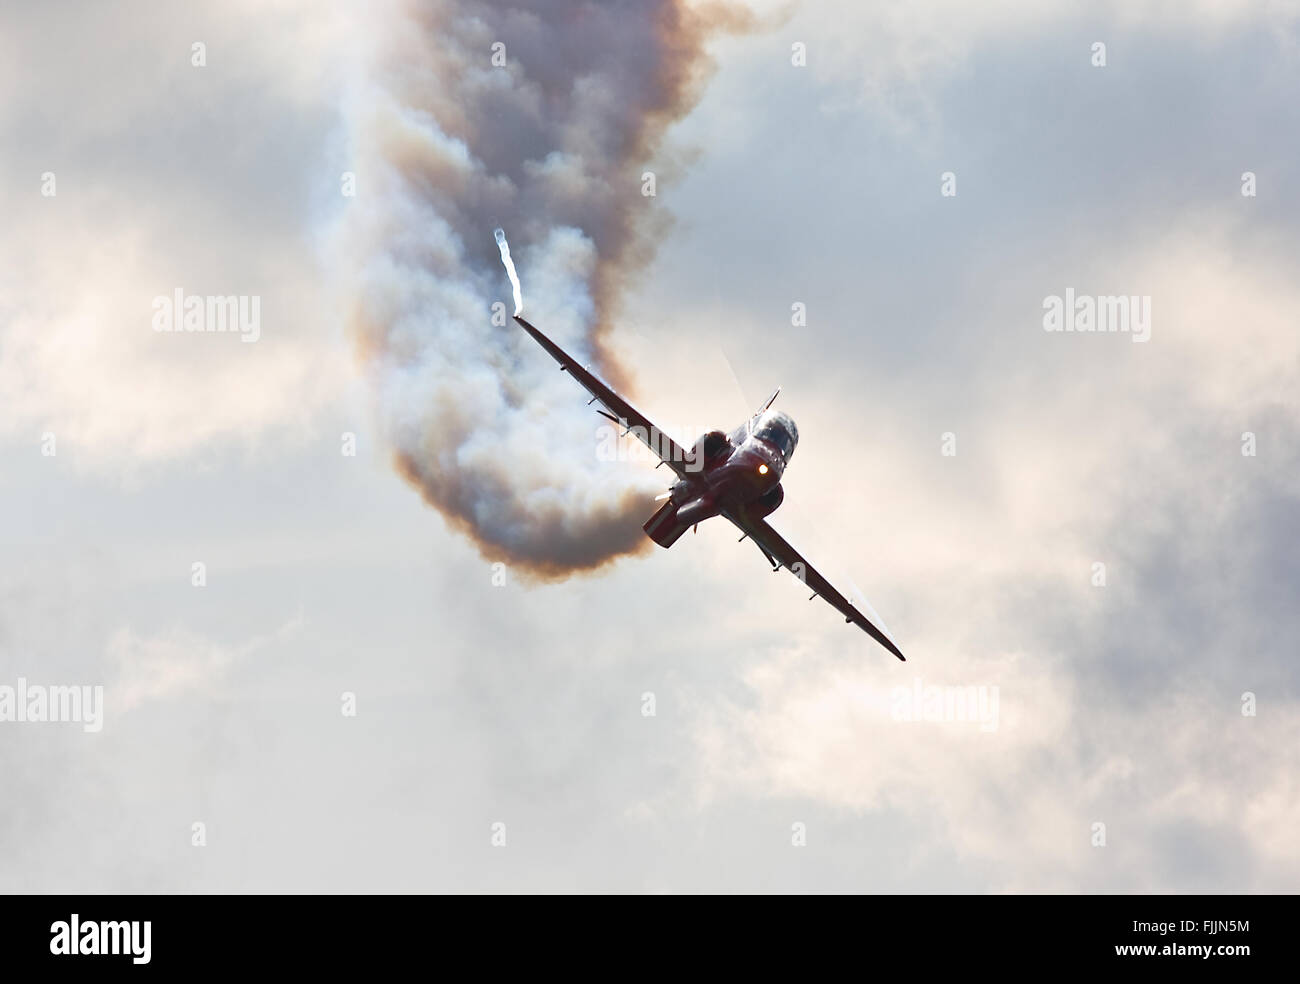 One of the RAFAT Red Arrows Synchro Pair runs in for an opposition pass - Stock Image